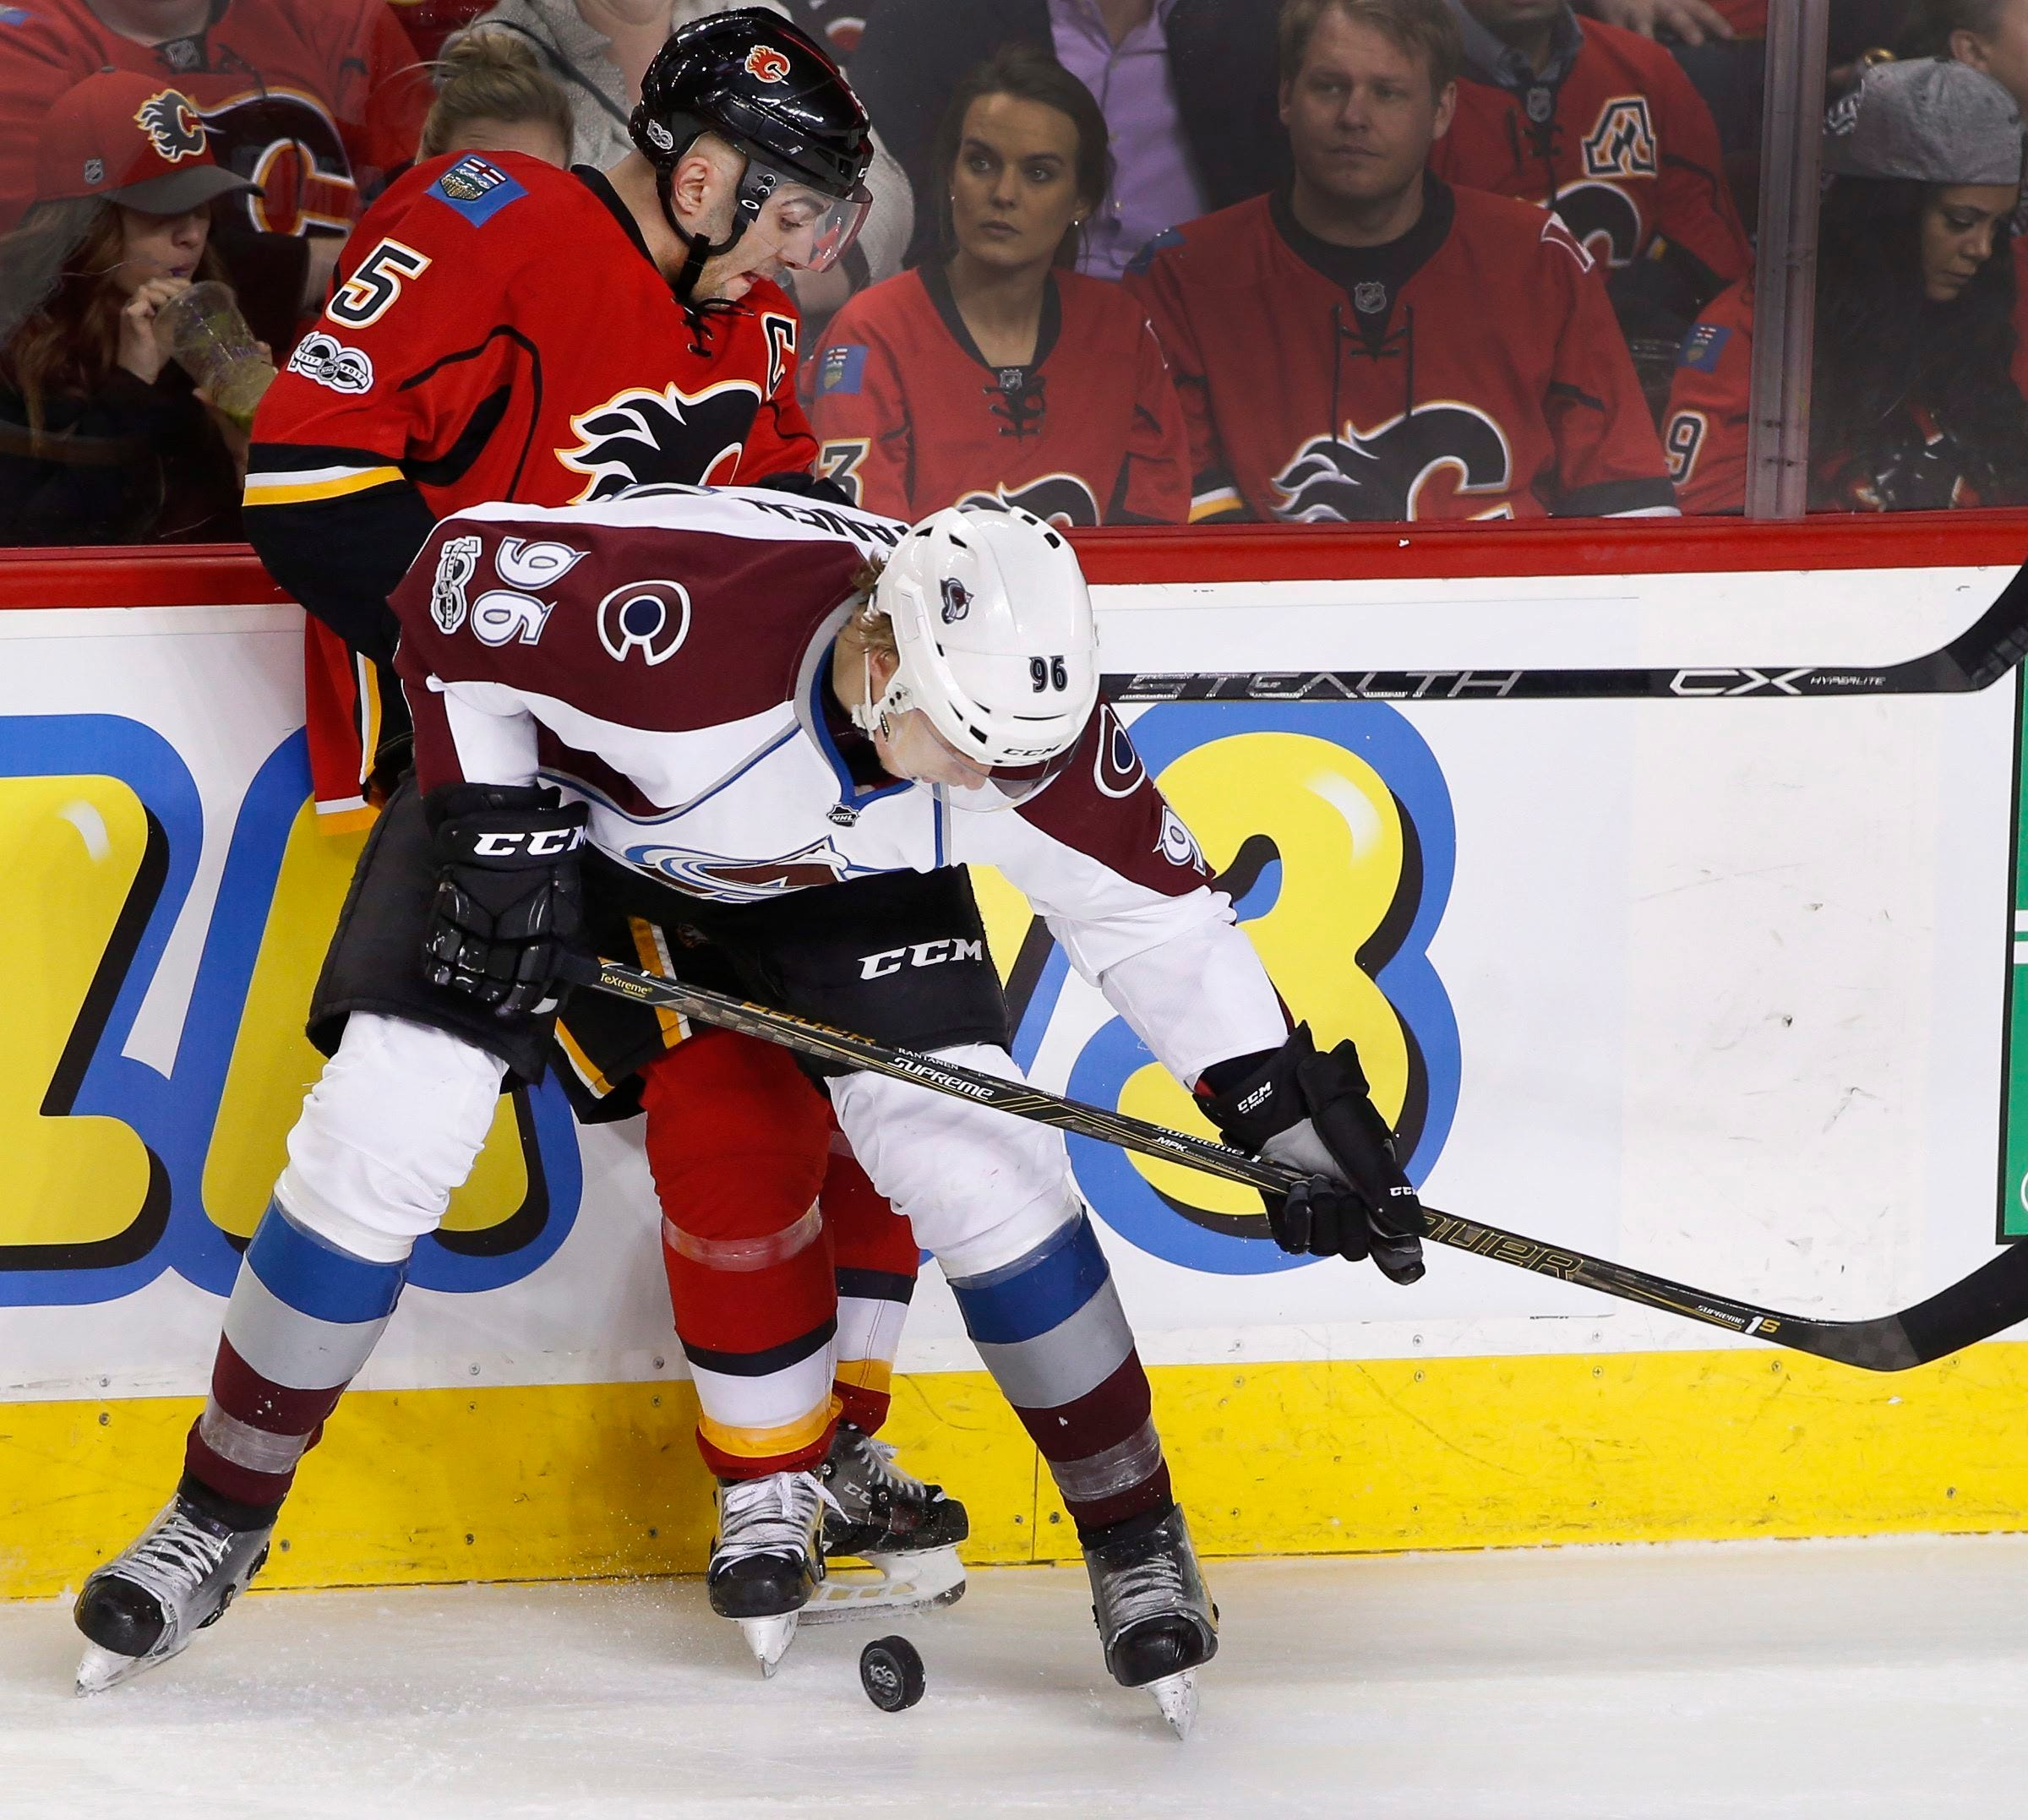 Monahan has goal, 3 assists in Flames' 4-2 win